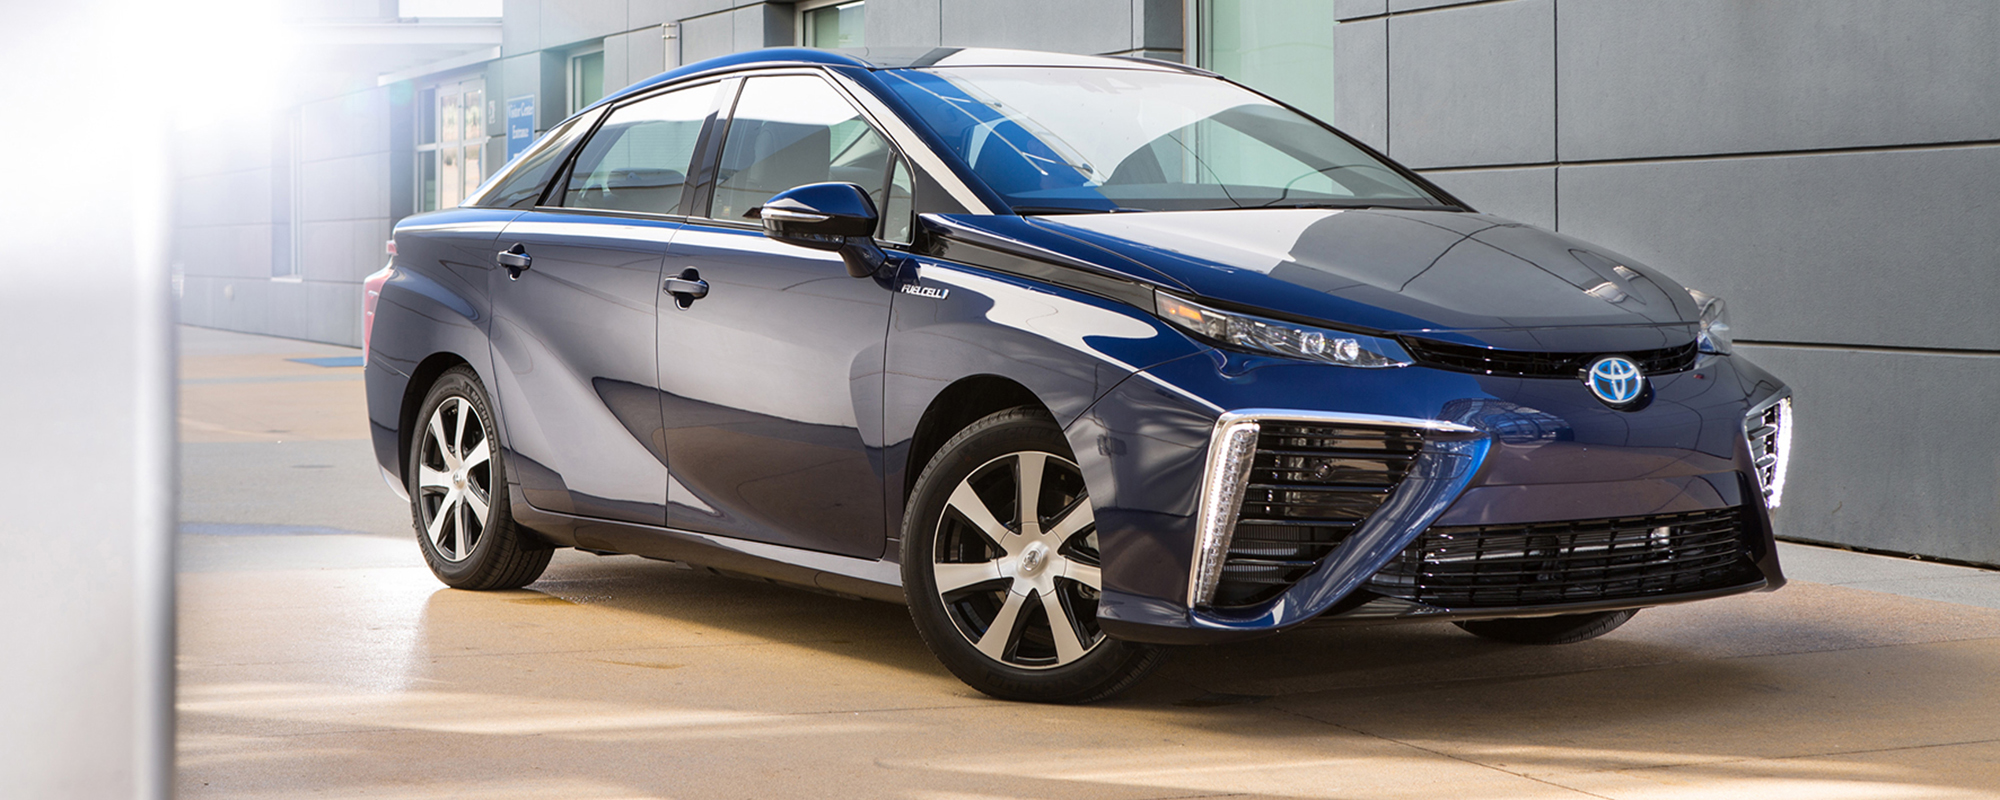 Hier is de toekomst: de Fuel Cell Toyota 'Mirai'